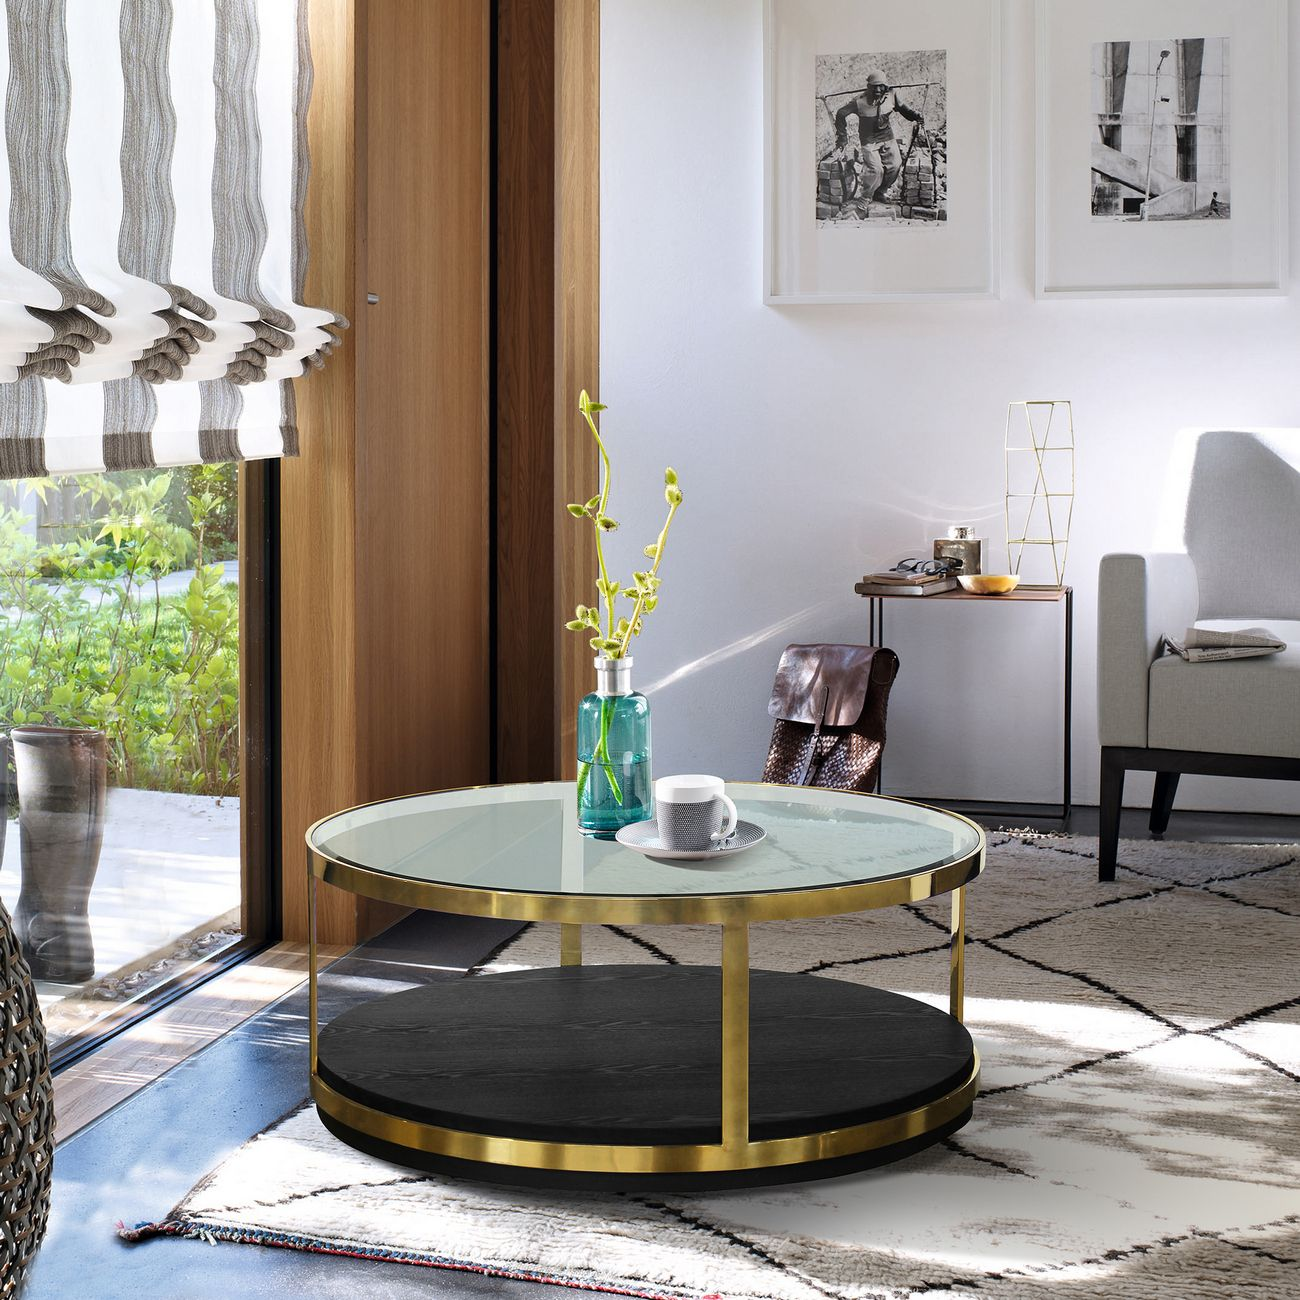 hattie contemporary coffee table in brushed gold finish black wood armen living lchtcobl